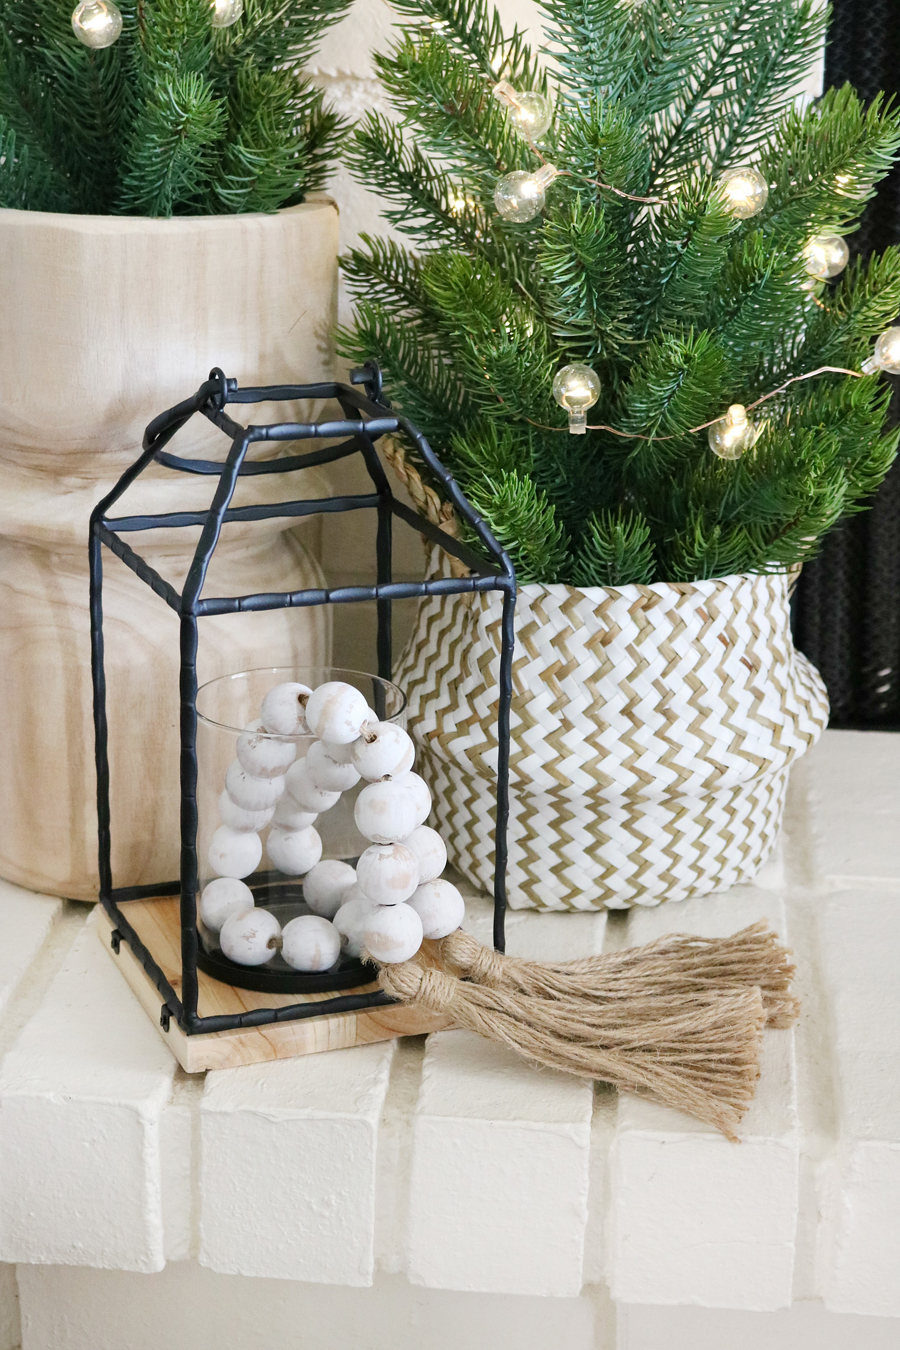 Black & White Casual Boho Christmas Decor - Fill lanterns with wooden casa beads and twinkle lights.